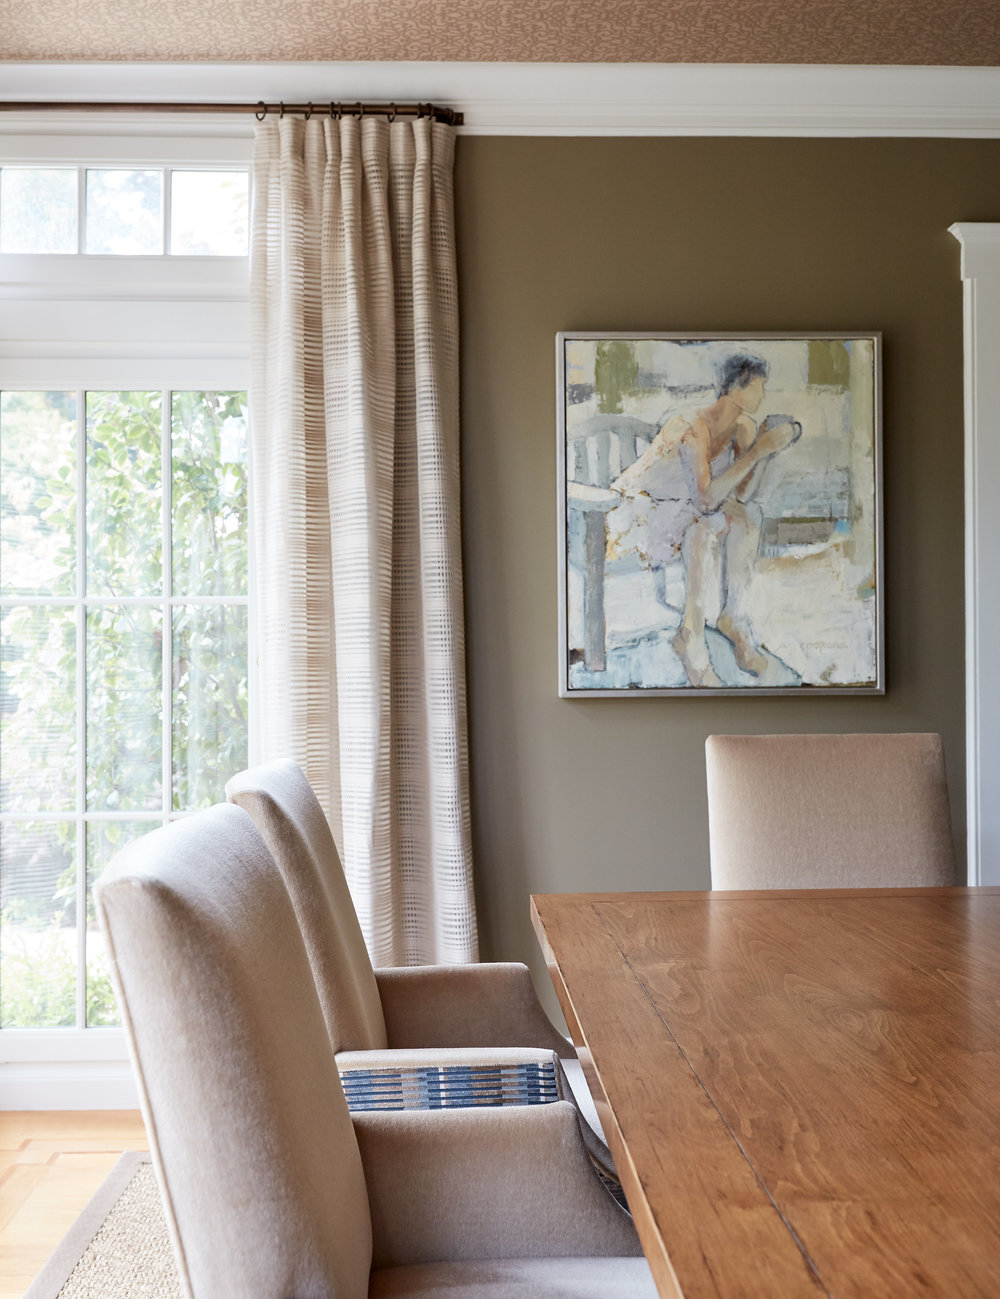 My client loved the calm repose in Melinda Cootsona's figurative piece.